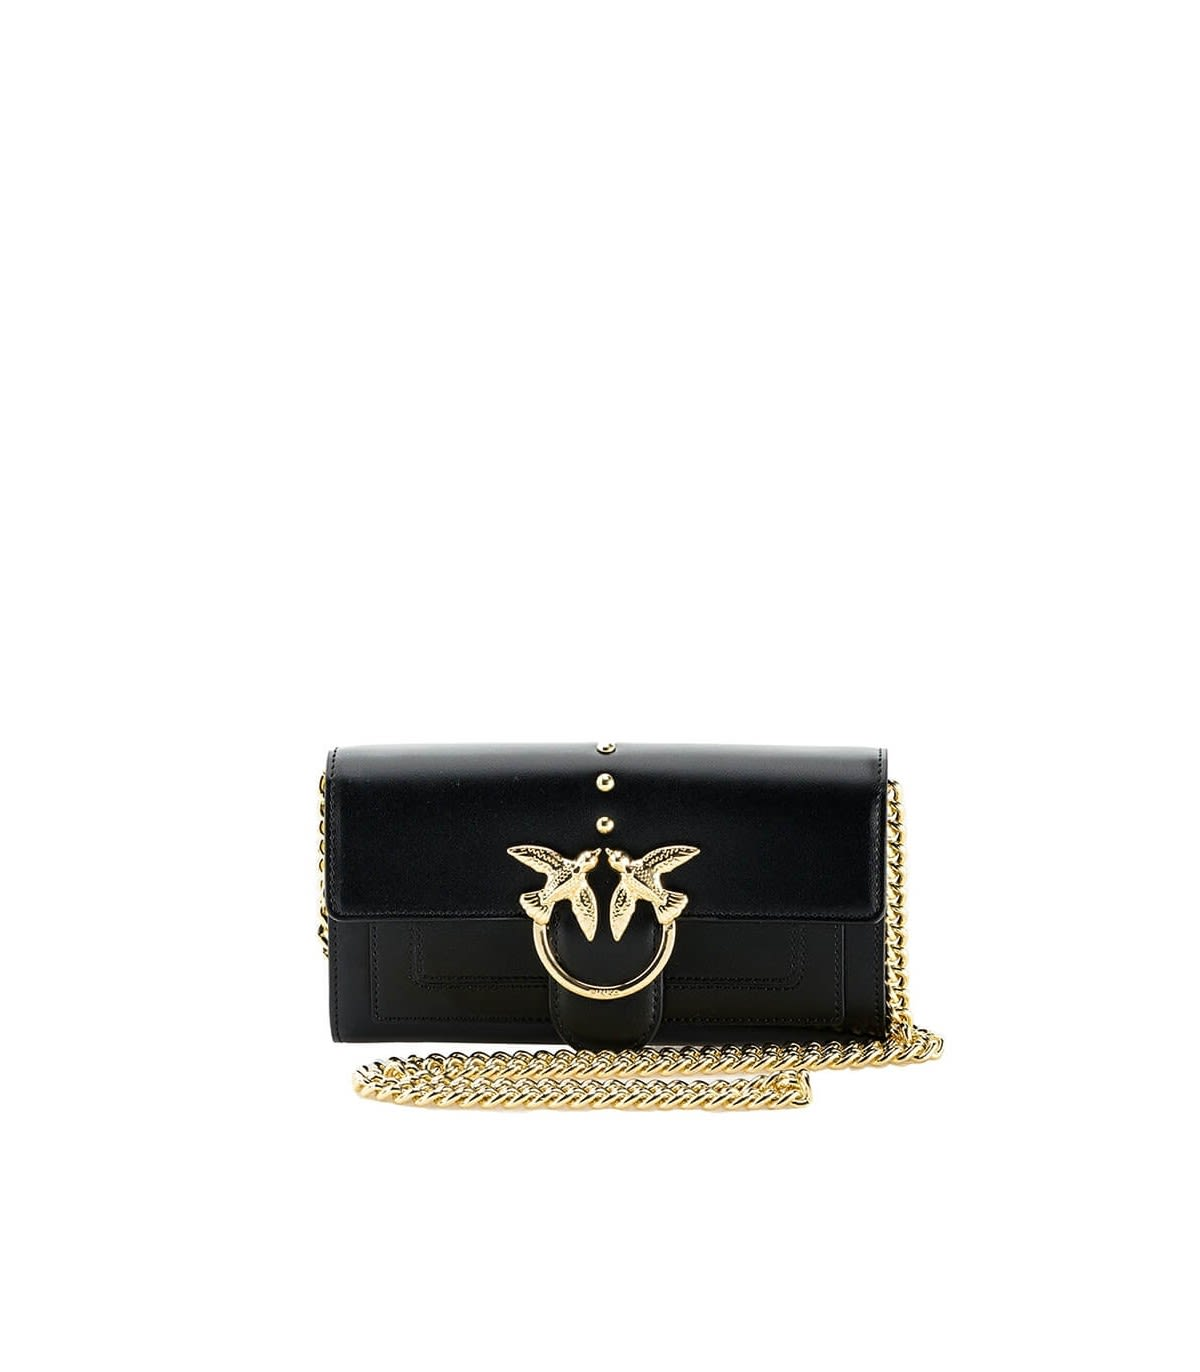 Pinko LOVE WALLET SIMPLY 2 C BLACK WALLET WITH CHAIN